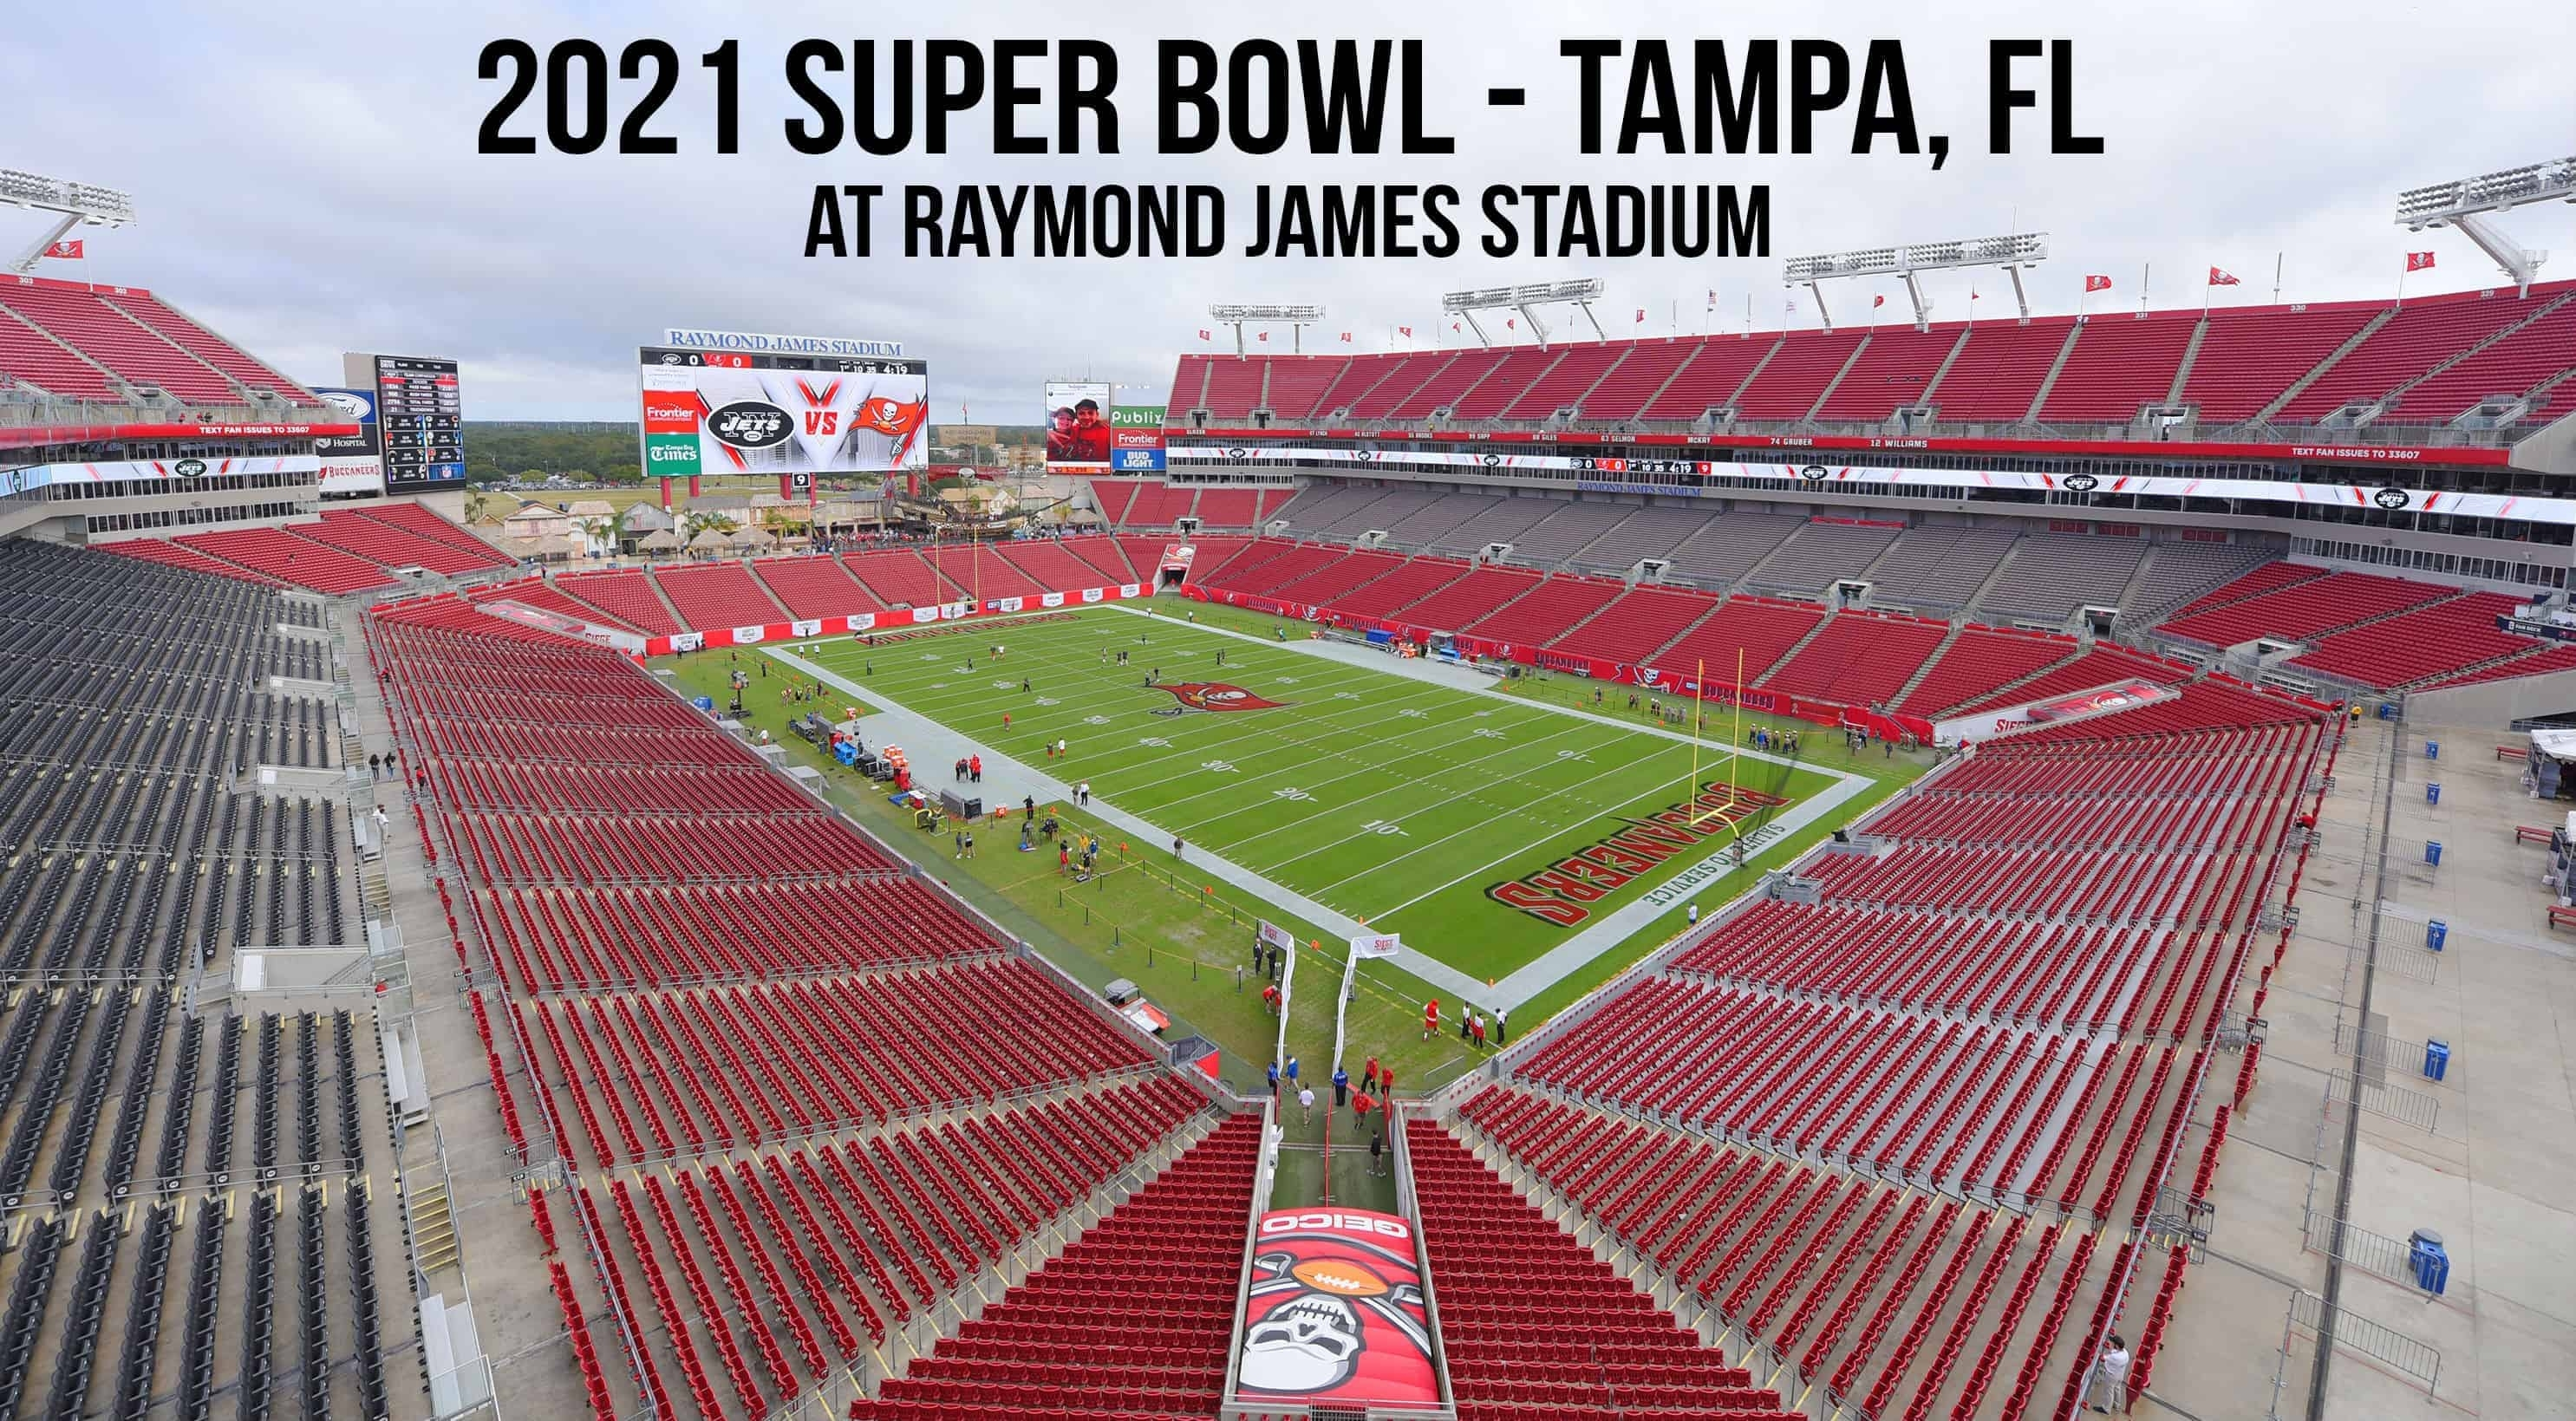 2020 Super Bowl Events And Party Guide - Super Bowl Liv pertaining to Super Bowl 2021 Tickets